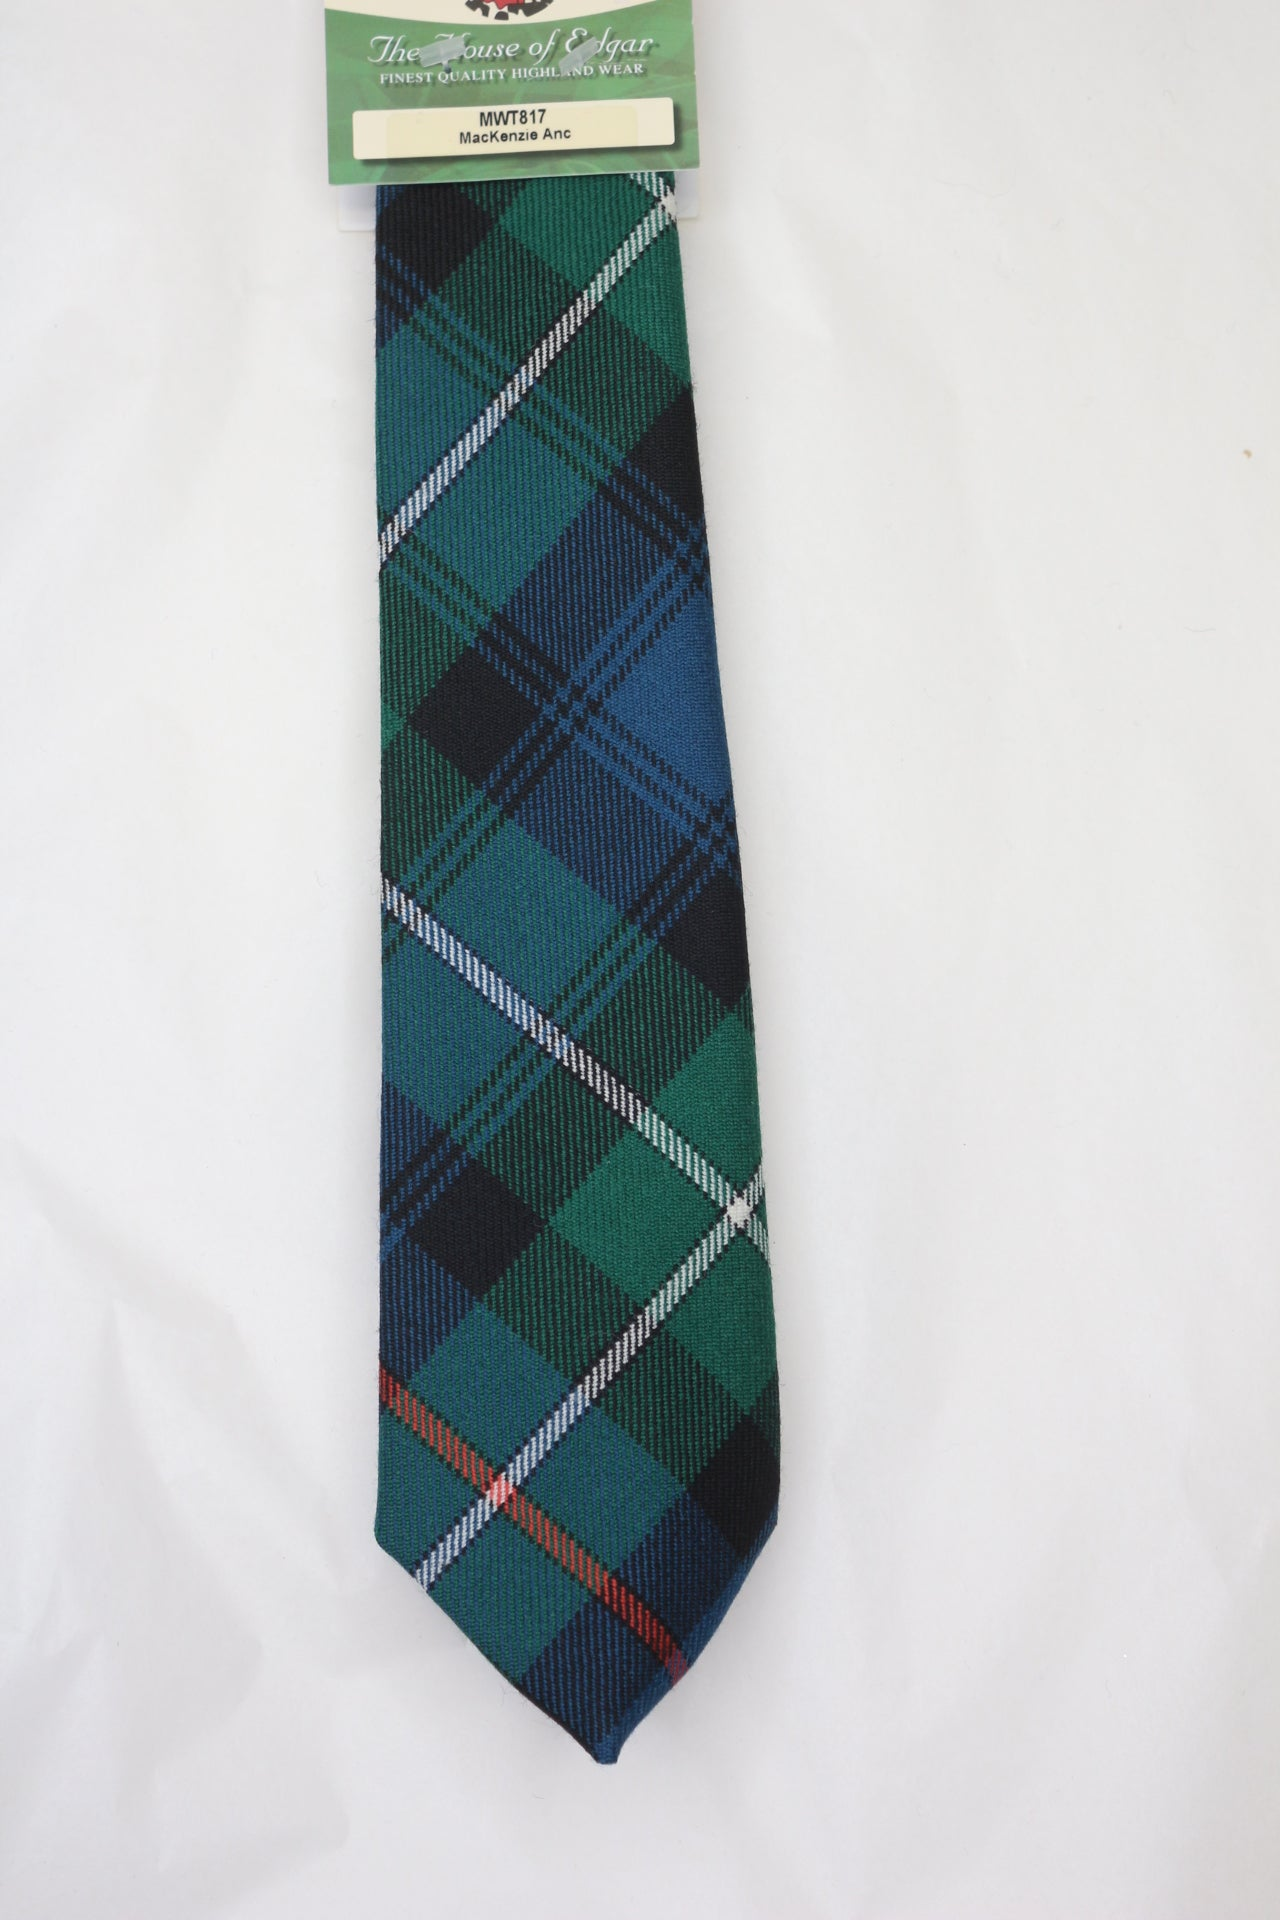 MacKenzie Ancient Tartan Tie - House of Edgar version - Anderson Kilts